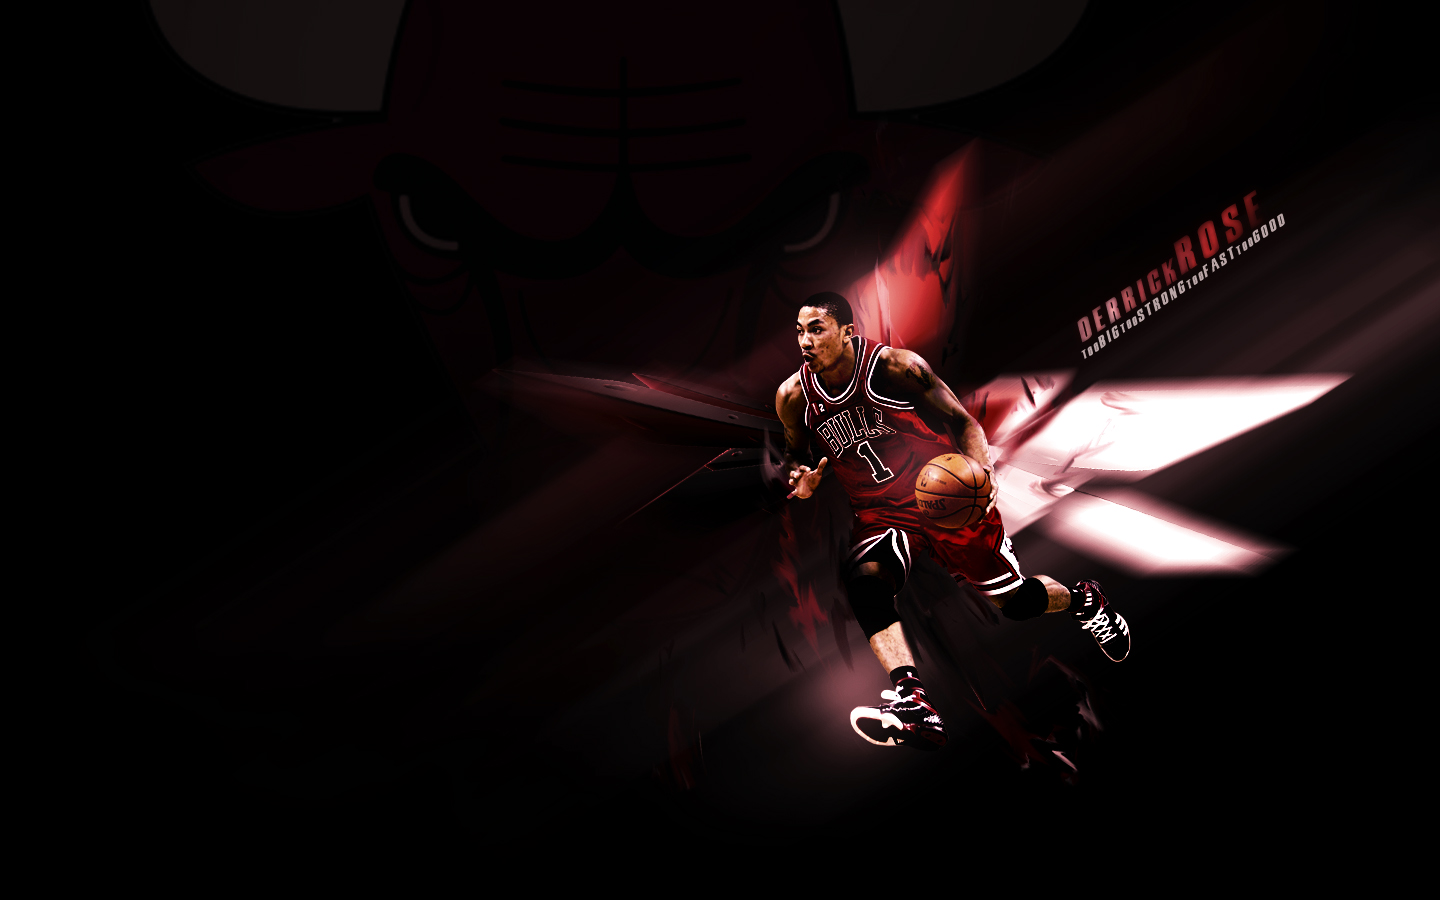 Derrick Rose Bulls Wallpaper by doubleG33 1440x900